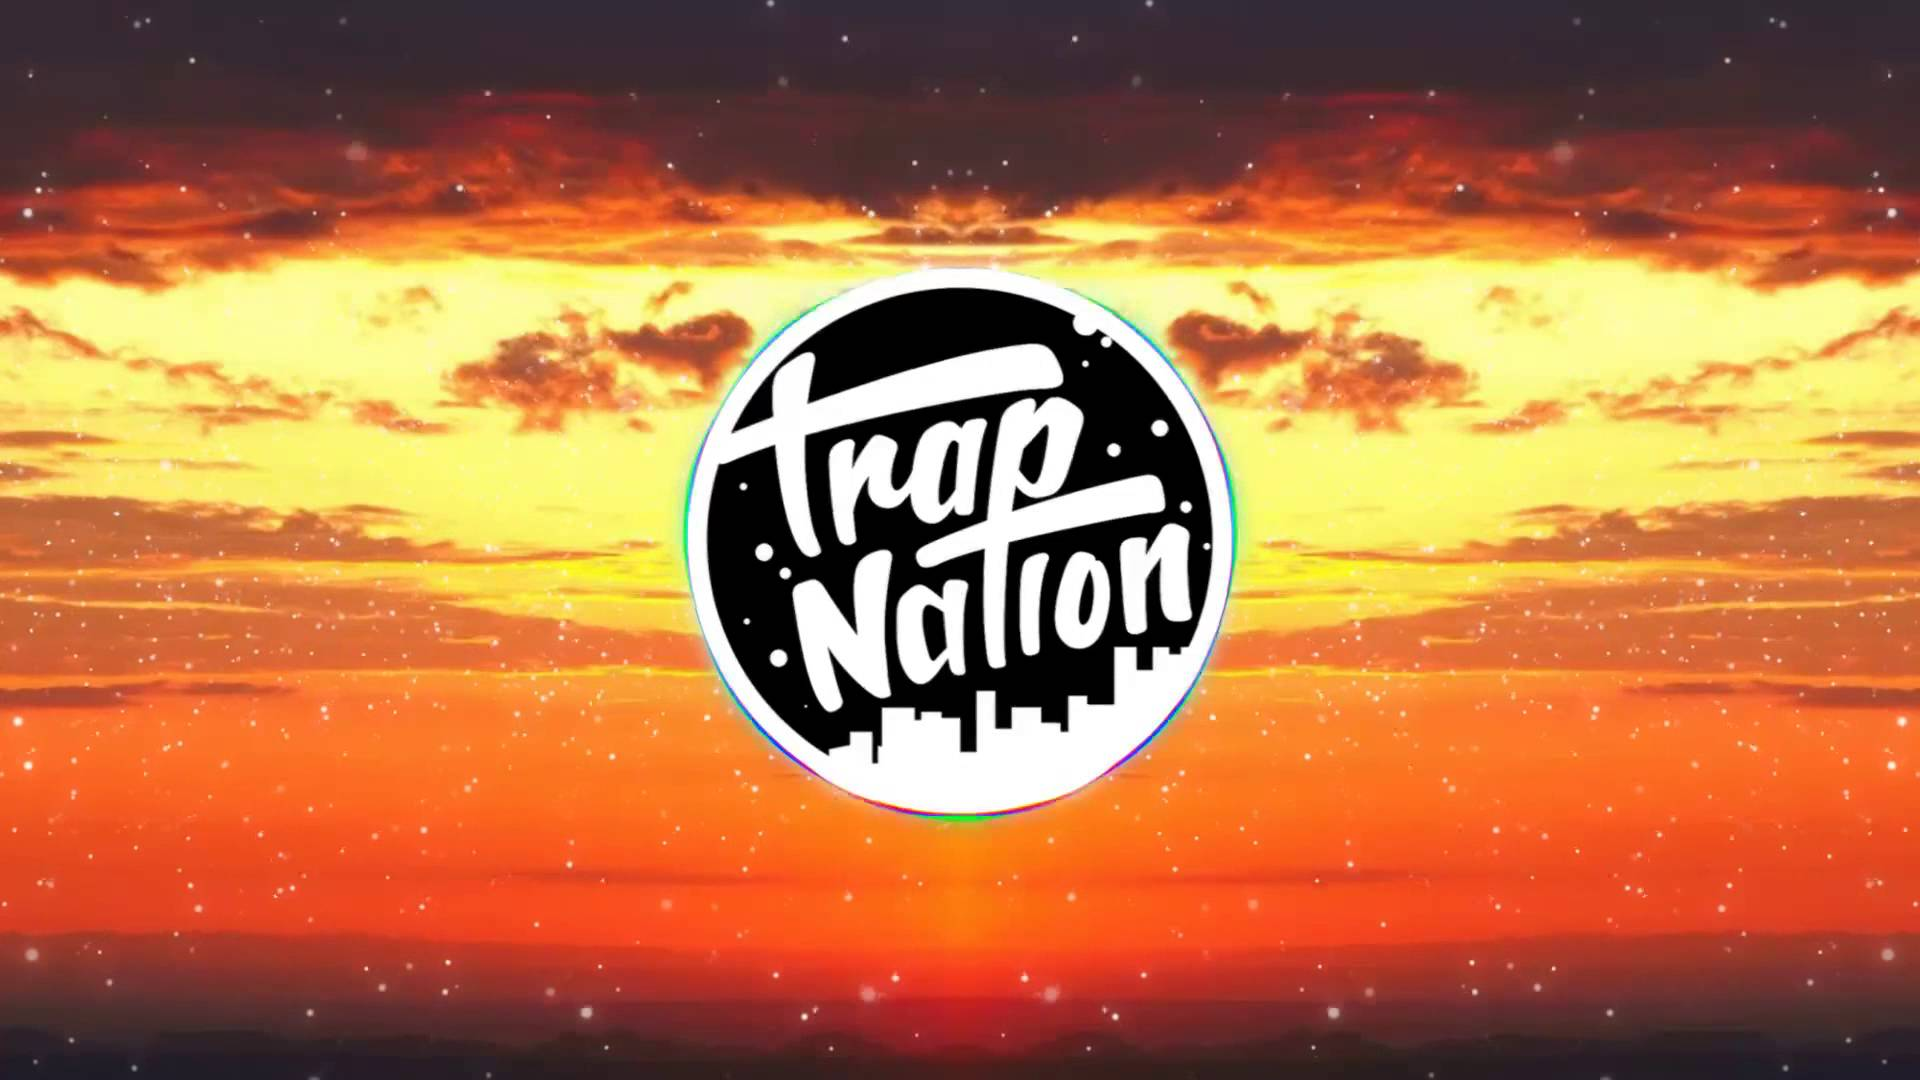 Trap Nation Wallpaper